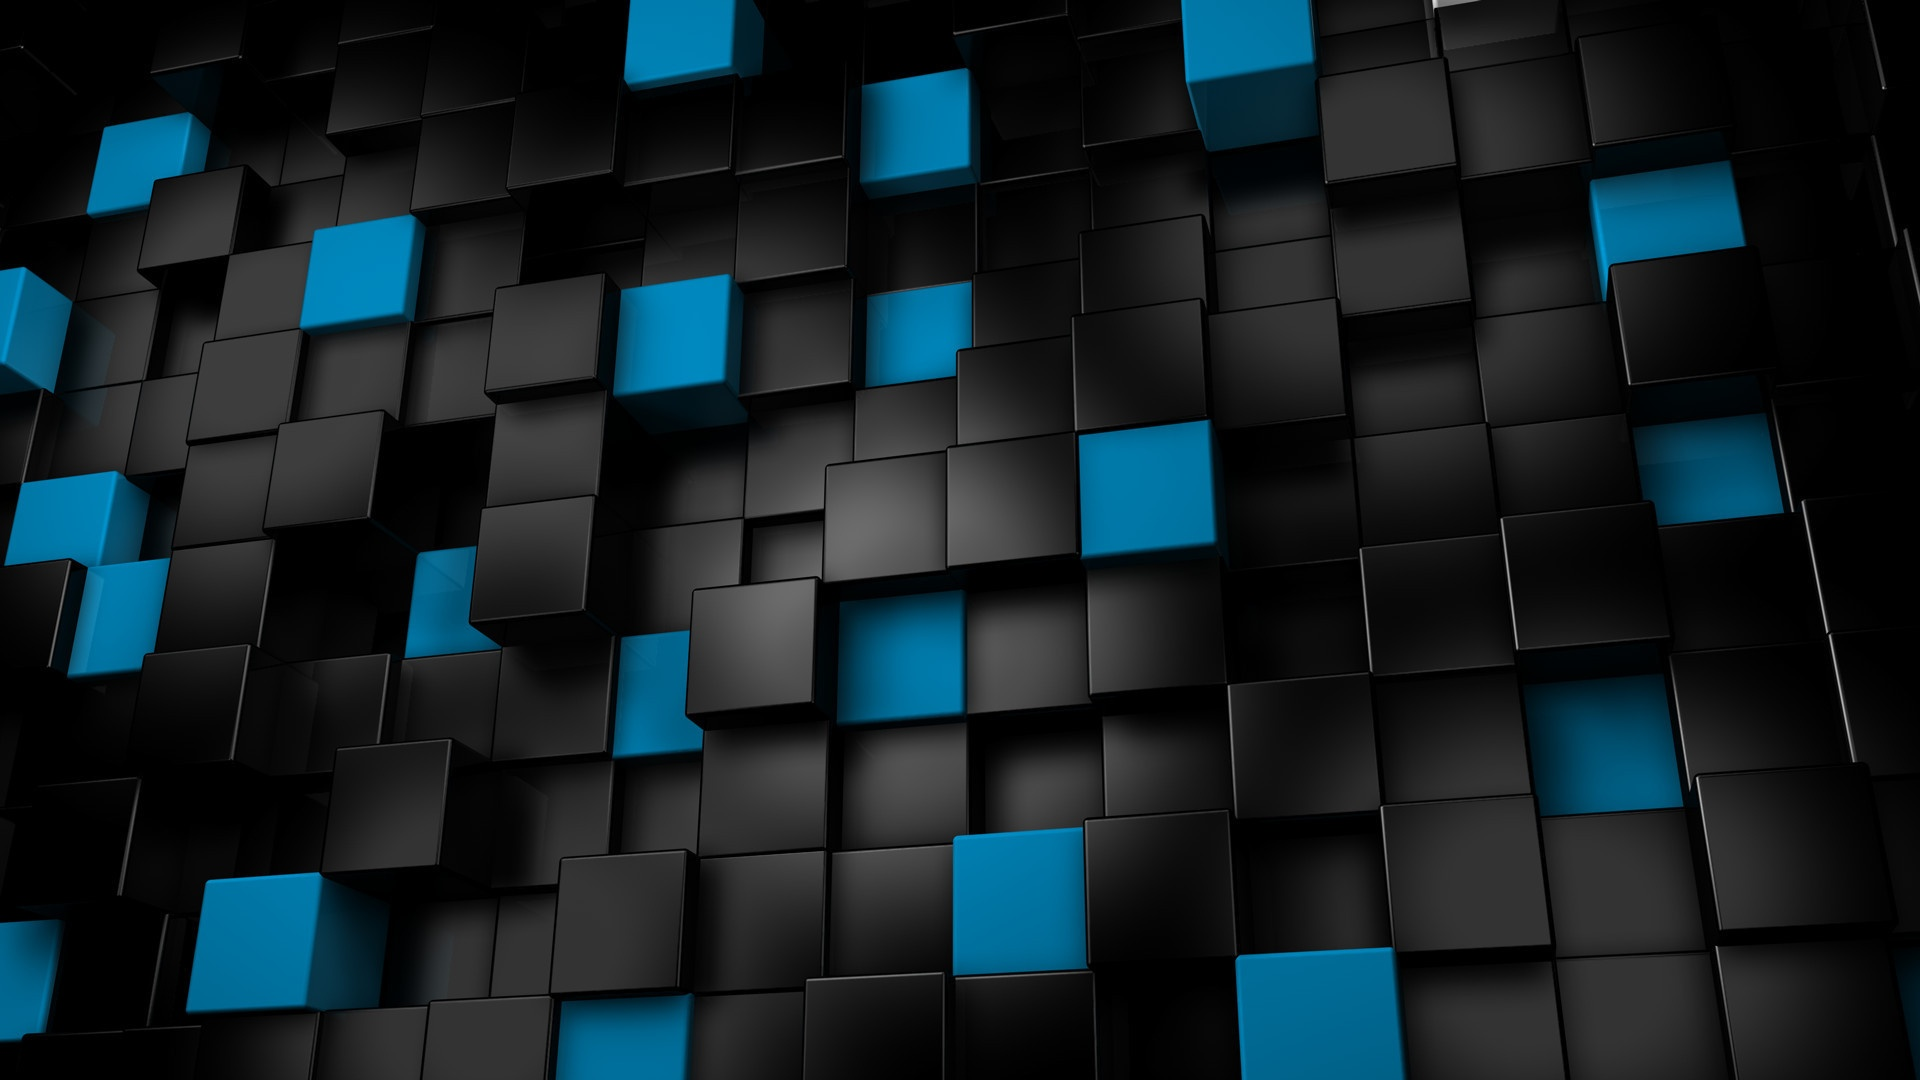 3d black cubes backgrounds wallpapers1 wallpapers55com   Best 1920x1080